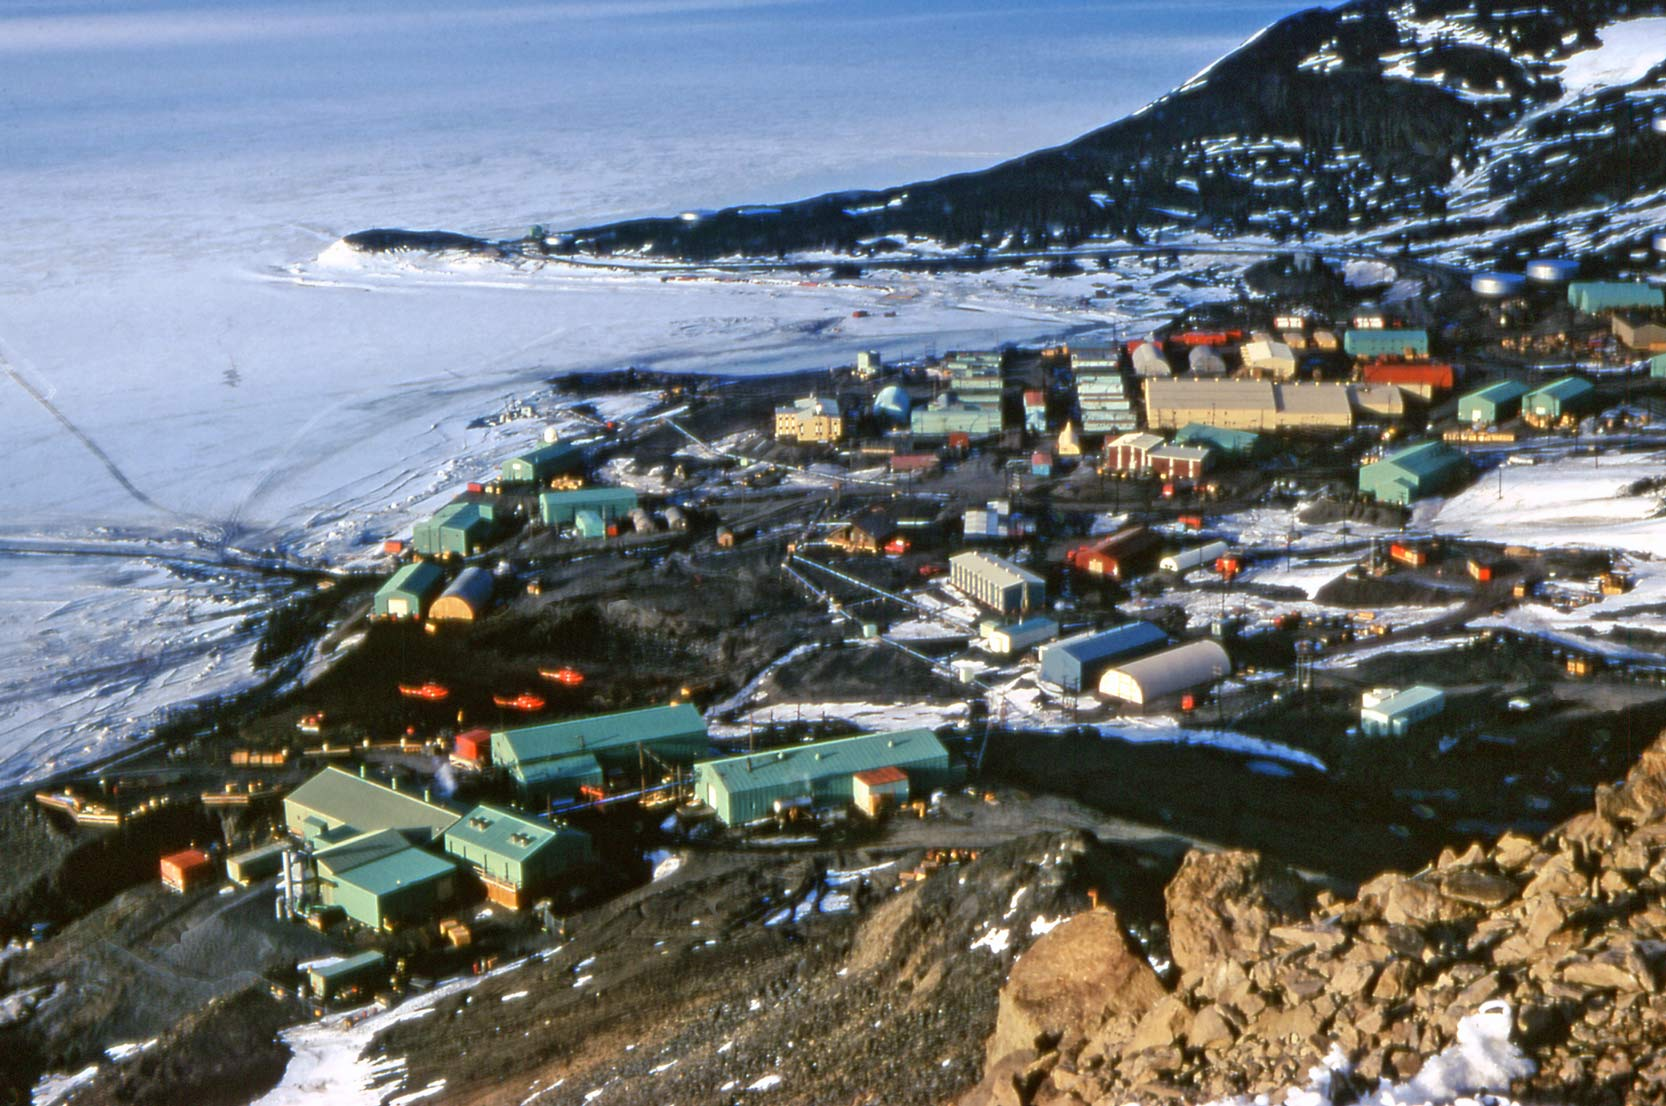 McMurdo Station as seen from Observation Hill, December 1972